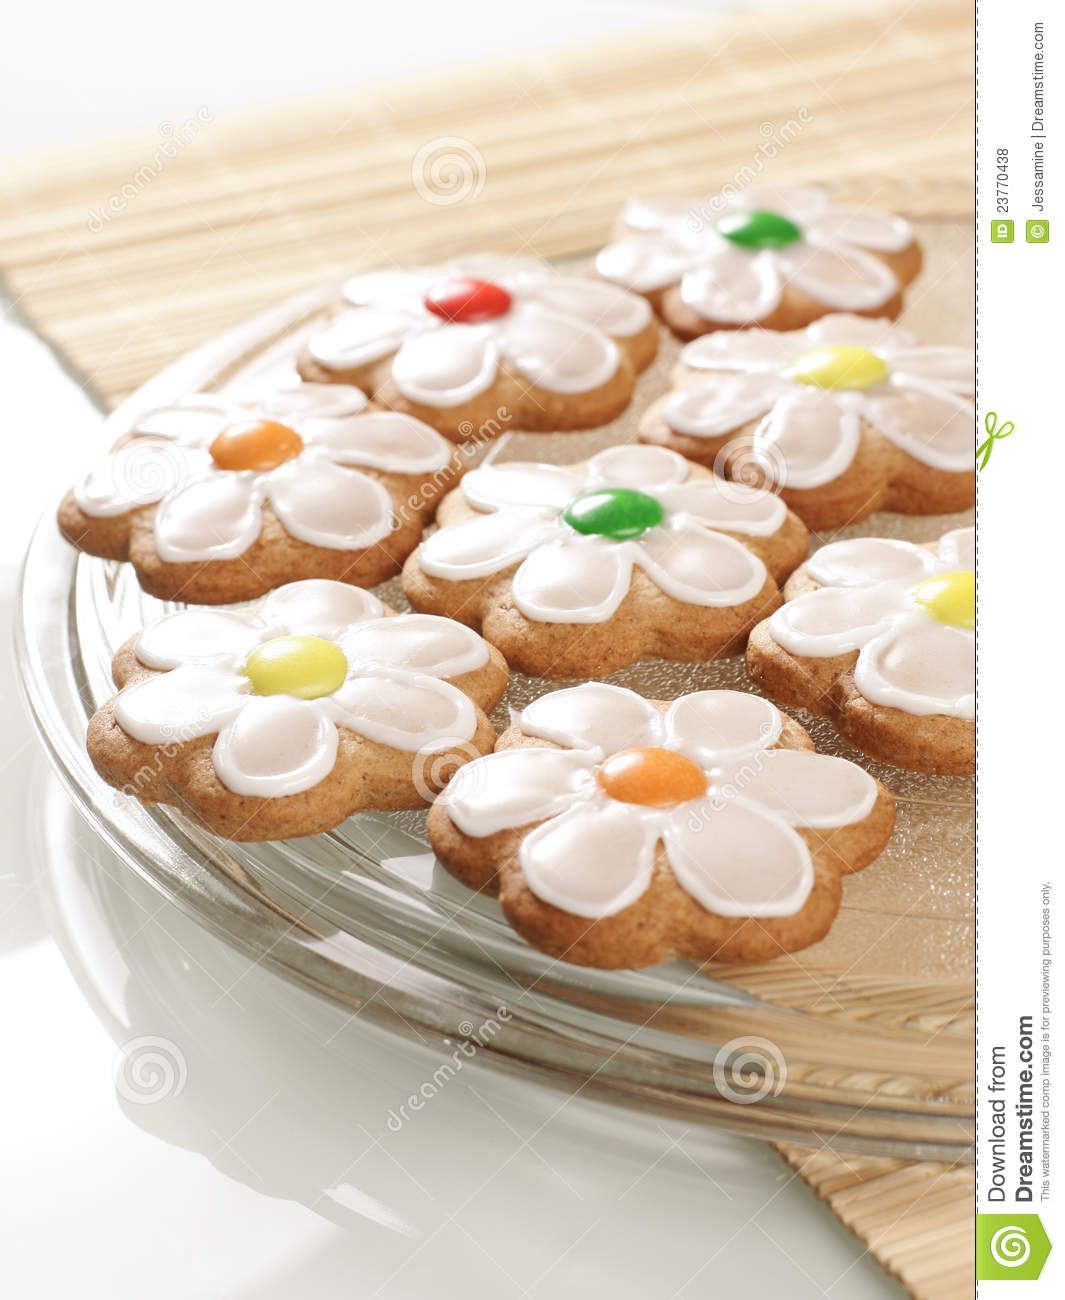 Gingerbread Cookies With Royal Icing Royalty Free Stock Photos - Image ...